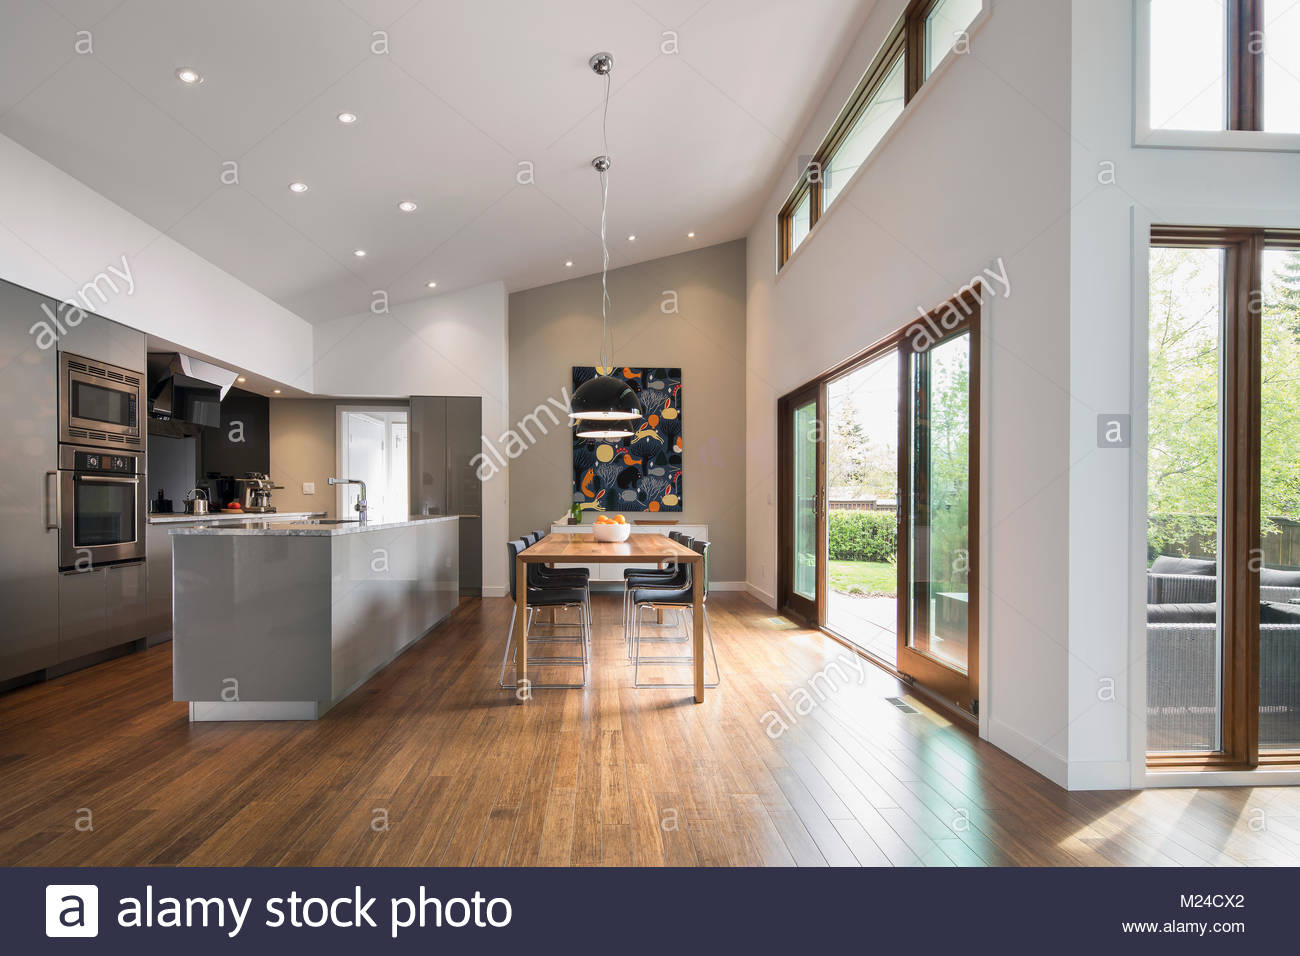 Home showcase open plan kitchen and dining room - Stock Image